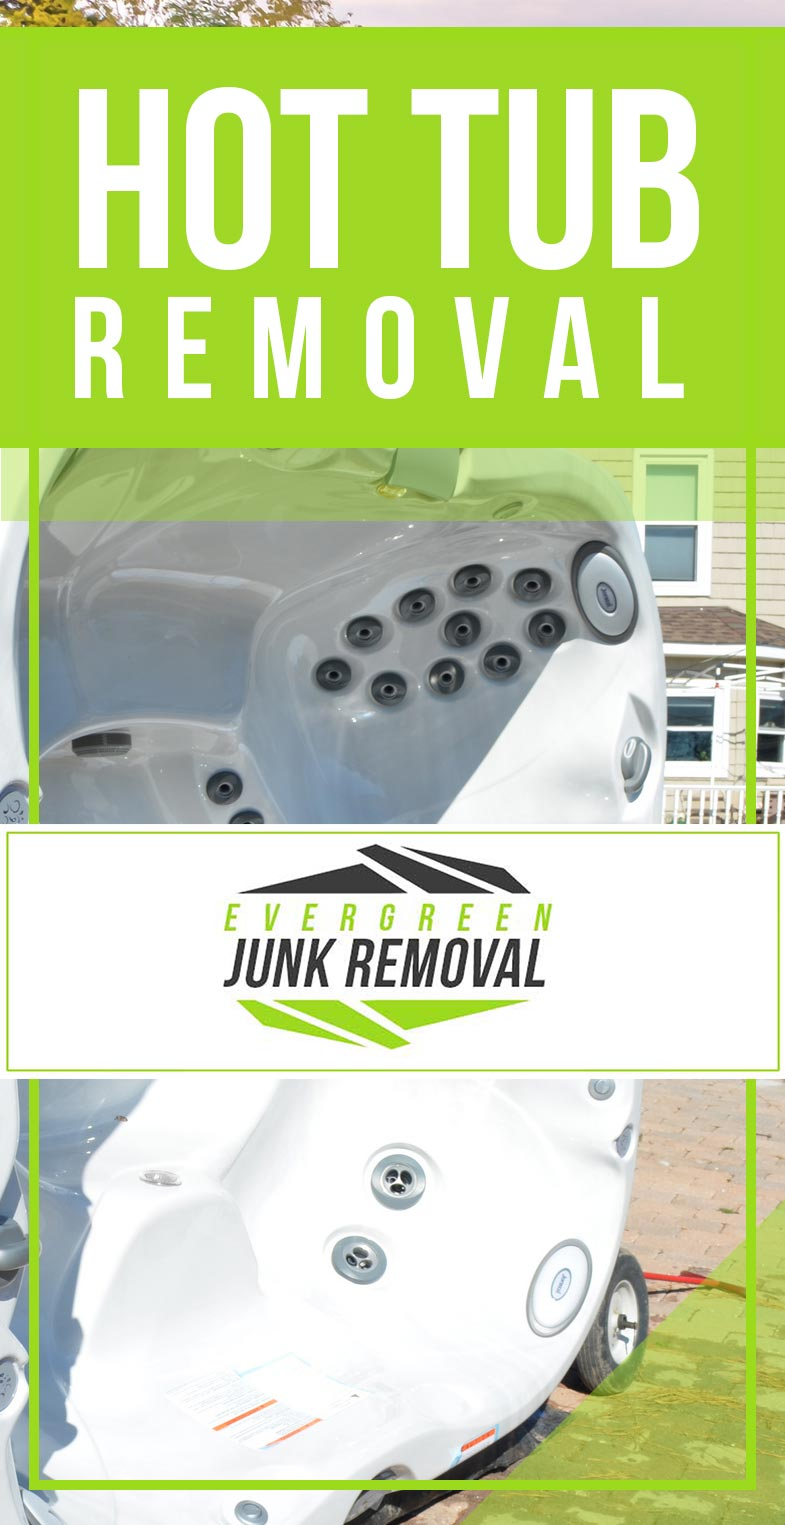 Arlington Hot Tub Removal